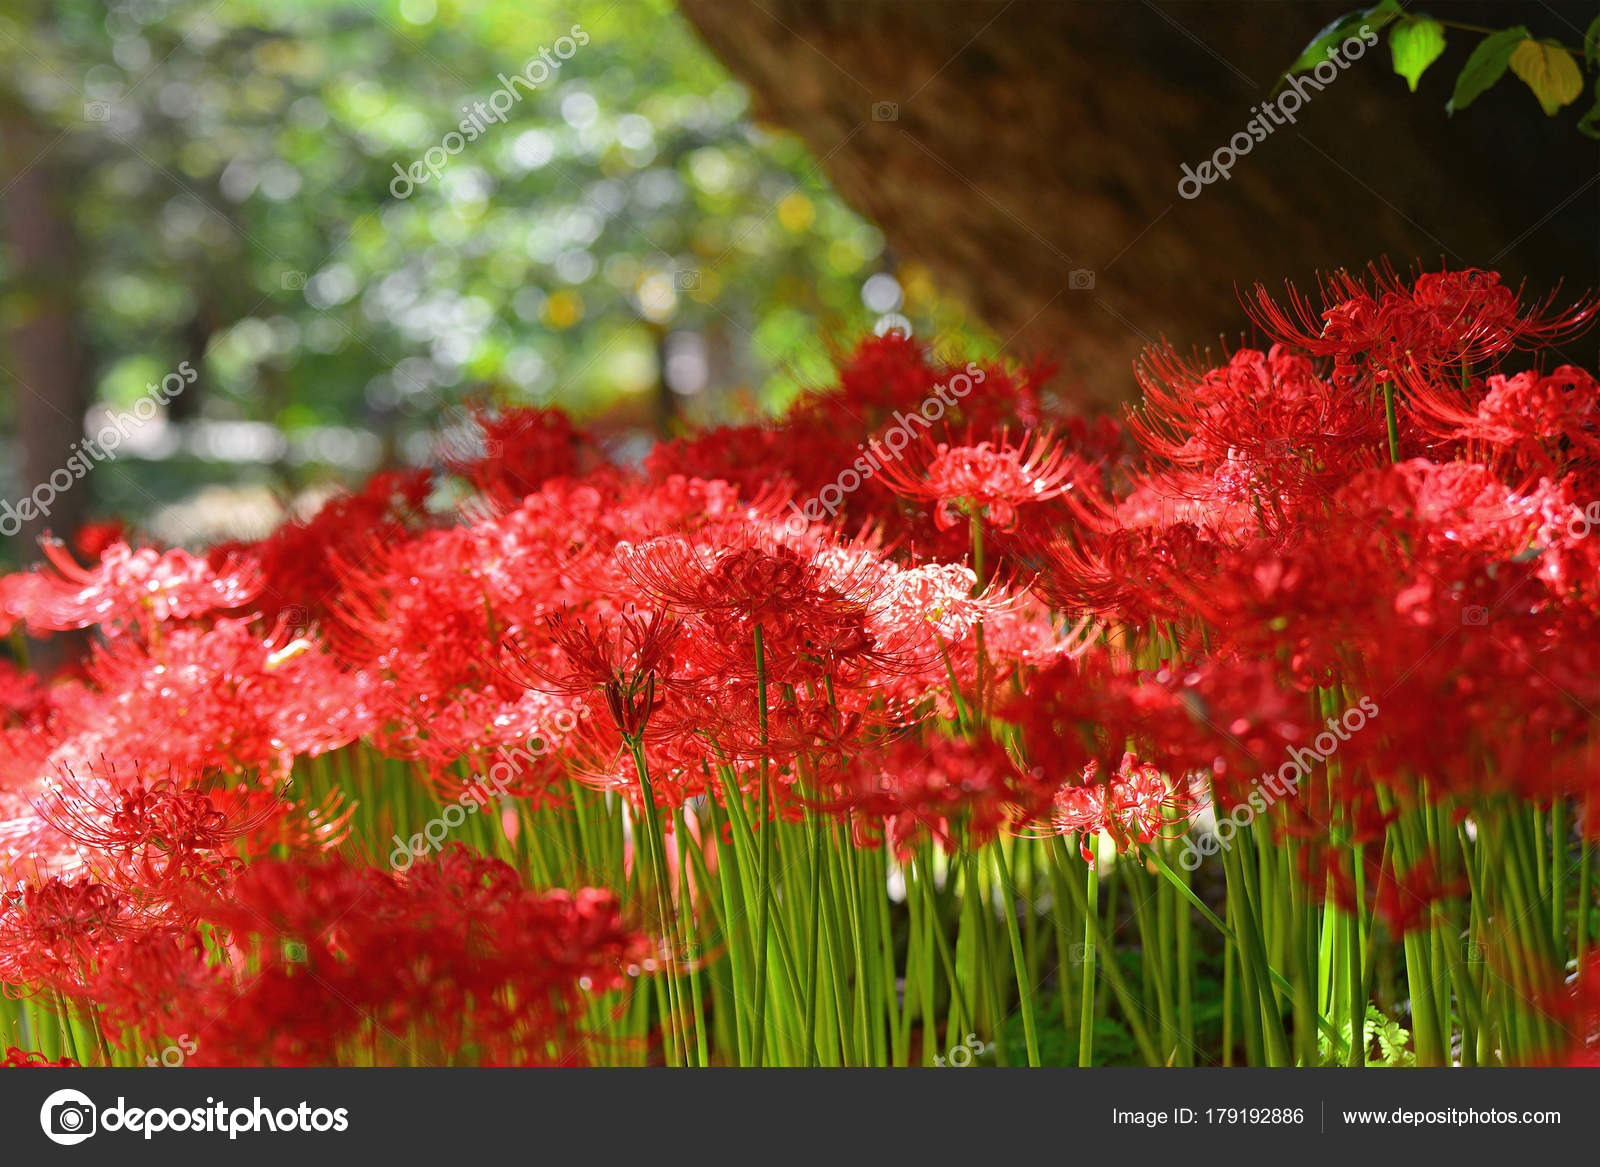 Red spider lily flowers stock photo ahmety34 179192886 red spider lily flowers stock photo izmirmasajfo Image collections